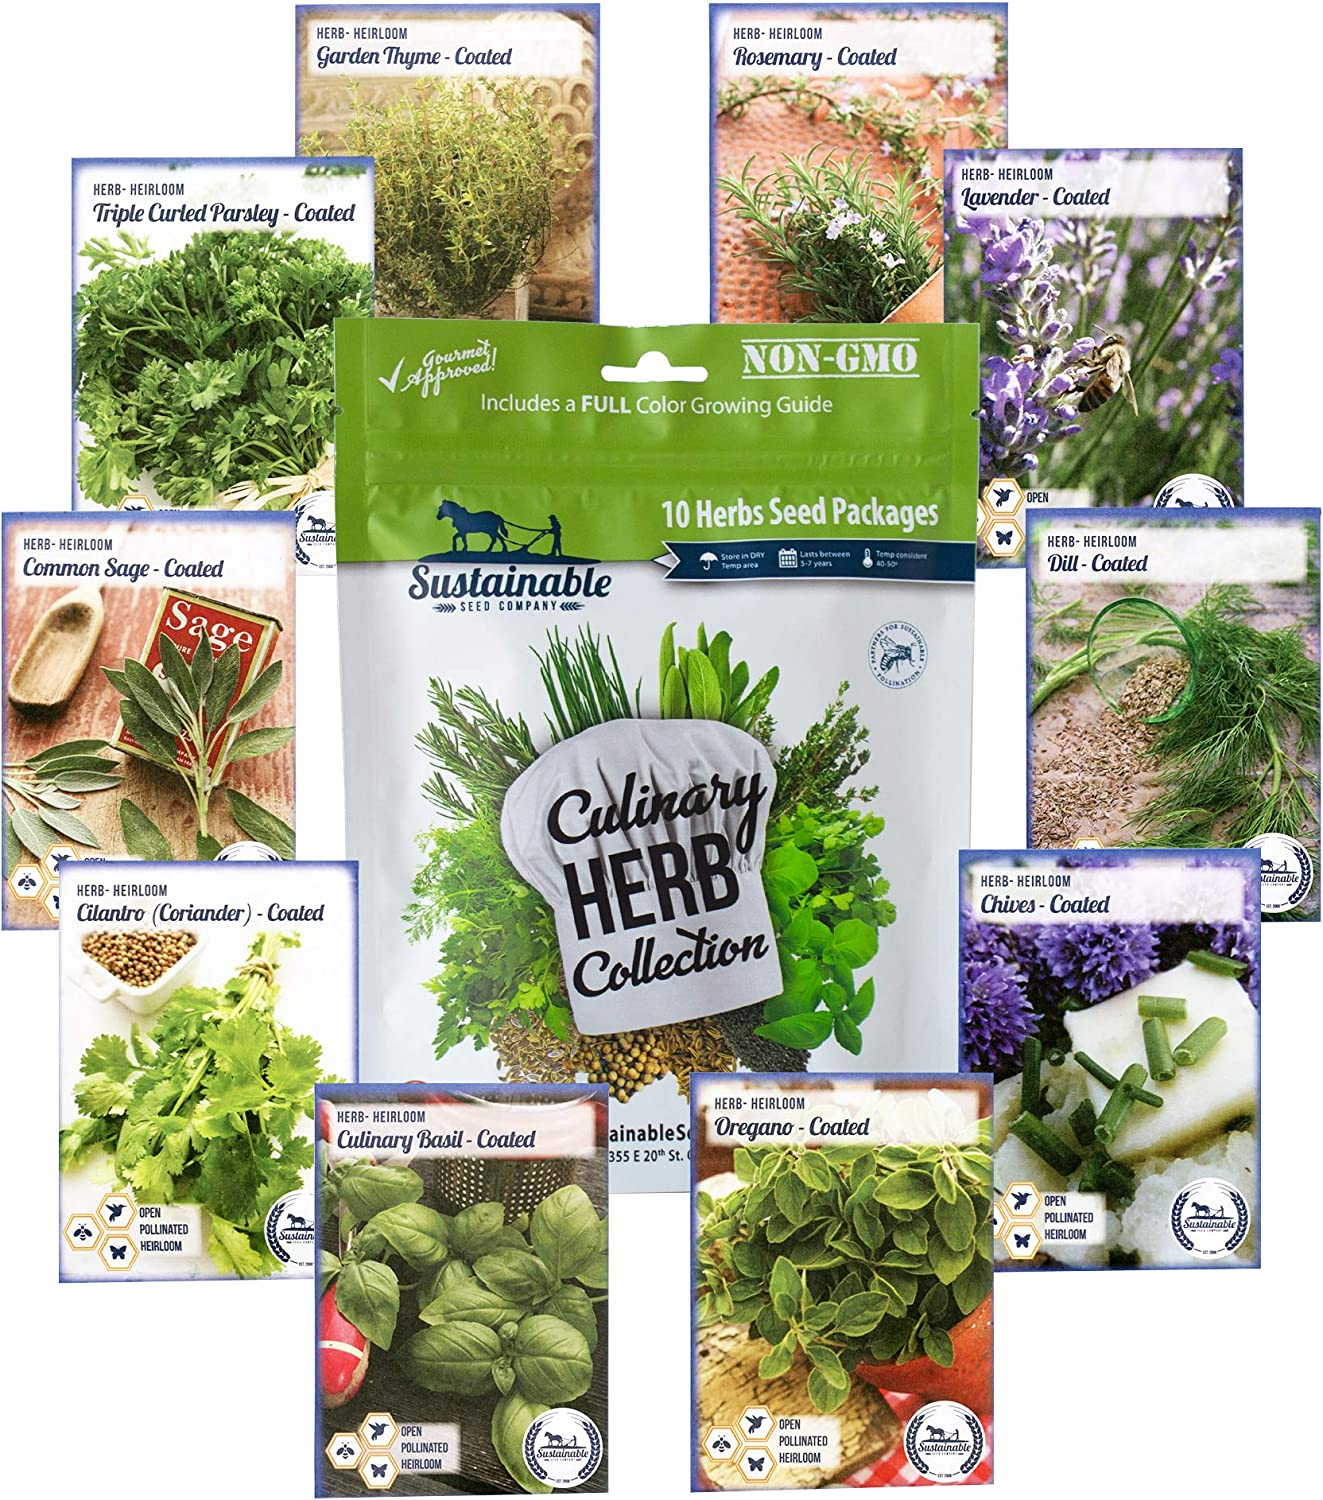 10 Variety Culinary Herb Collection und 96 Seite Growing Guide - Non Gmo Heirloom Basil, Thyme, Rosemary, Oregano, Parsley, Lavender, Sage, Cilantro, Chives, Dill